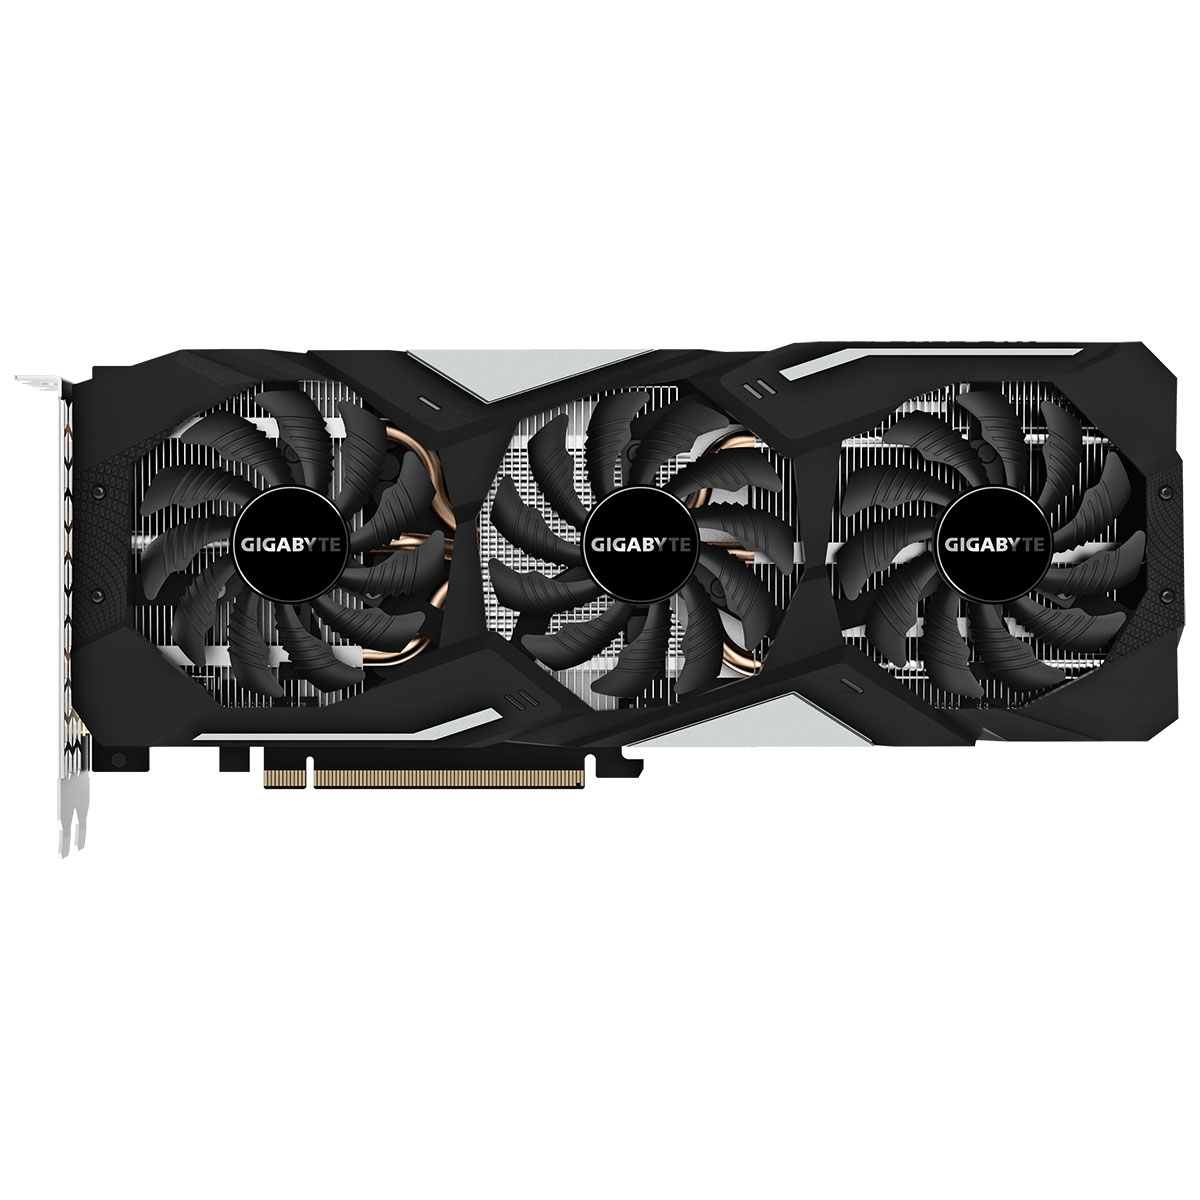 GeForce GTX 1660 Gaming OC 6G (GV-N1660GAMING OC-6GD) - Achat / Vente Carte graphique sur Picata.fr - 4